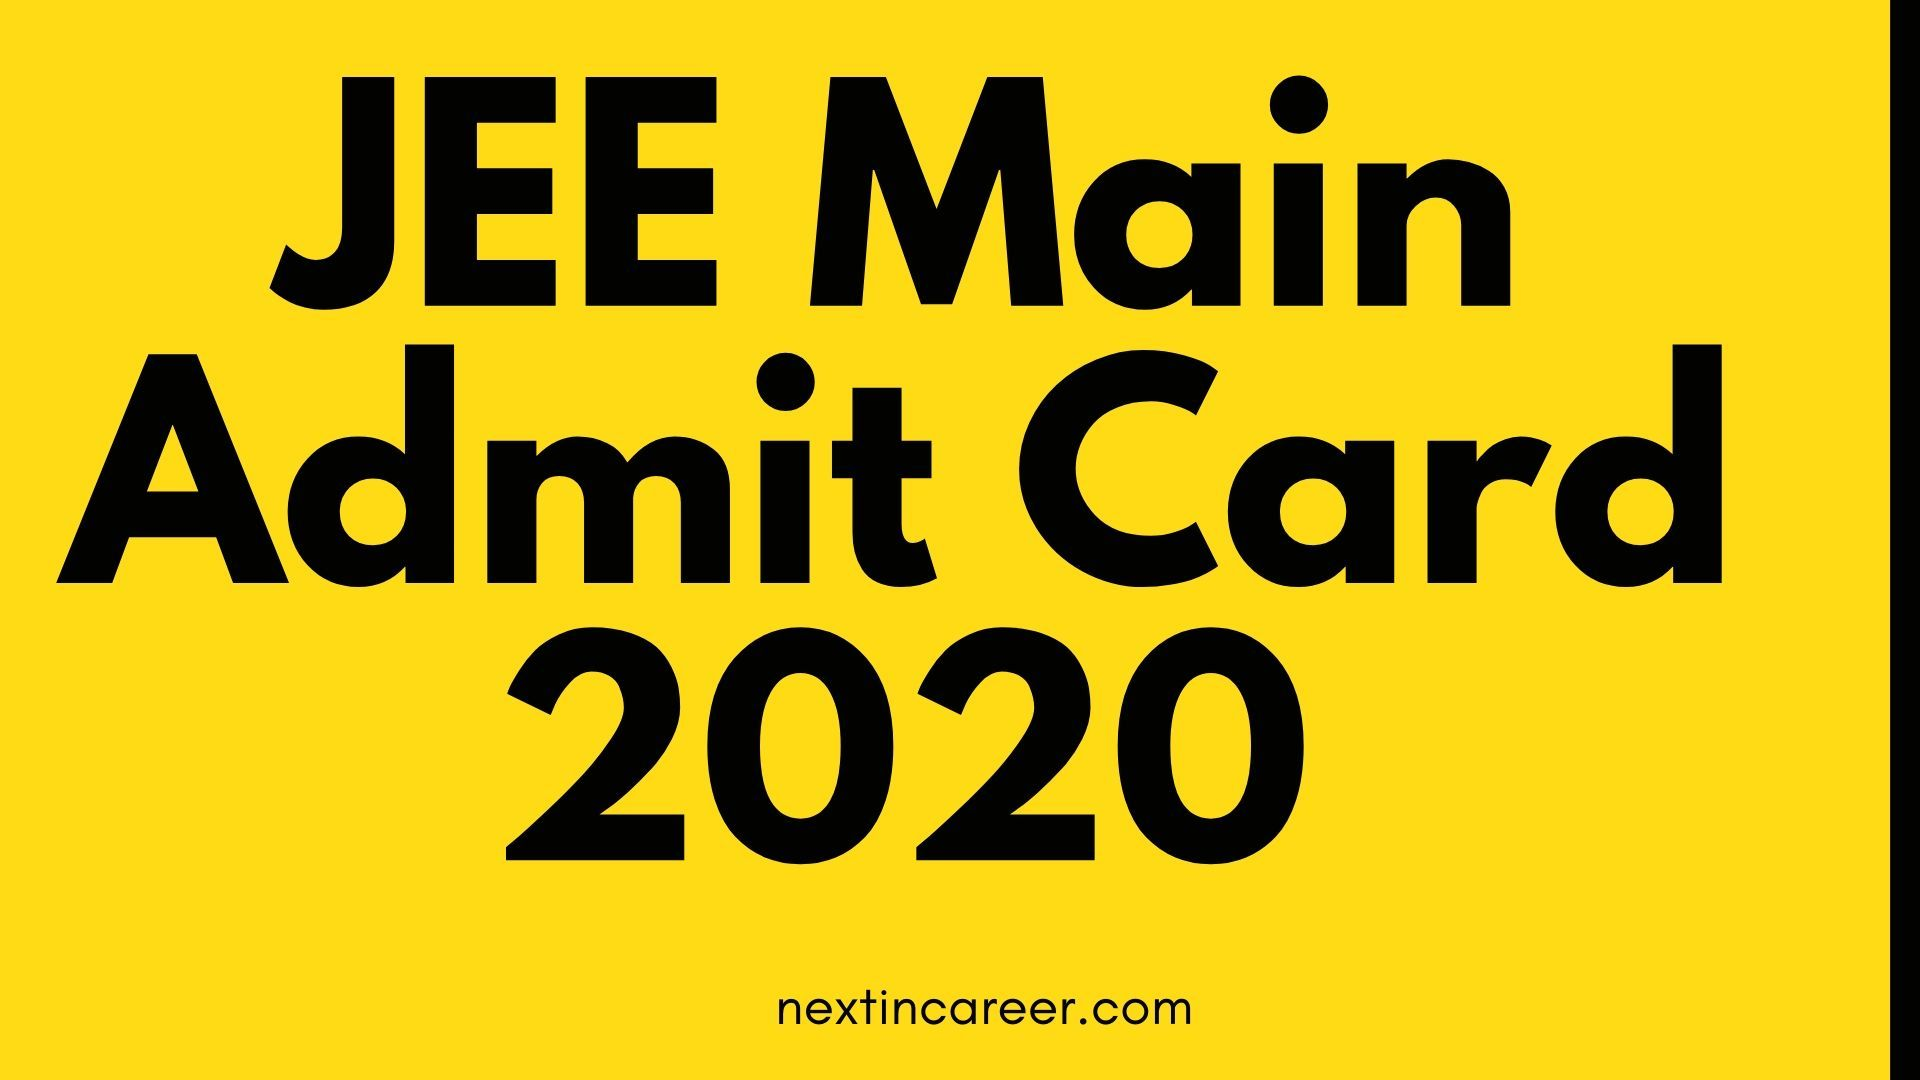 Jee Main Admit Card Hall Ticket 2020 Date Releasing On 31st March Ration Card Aadhar Card Attendance Sheet